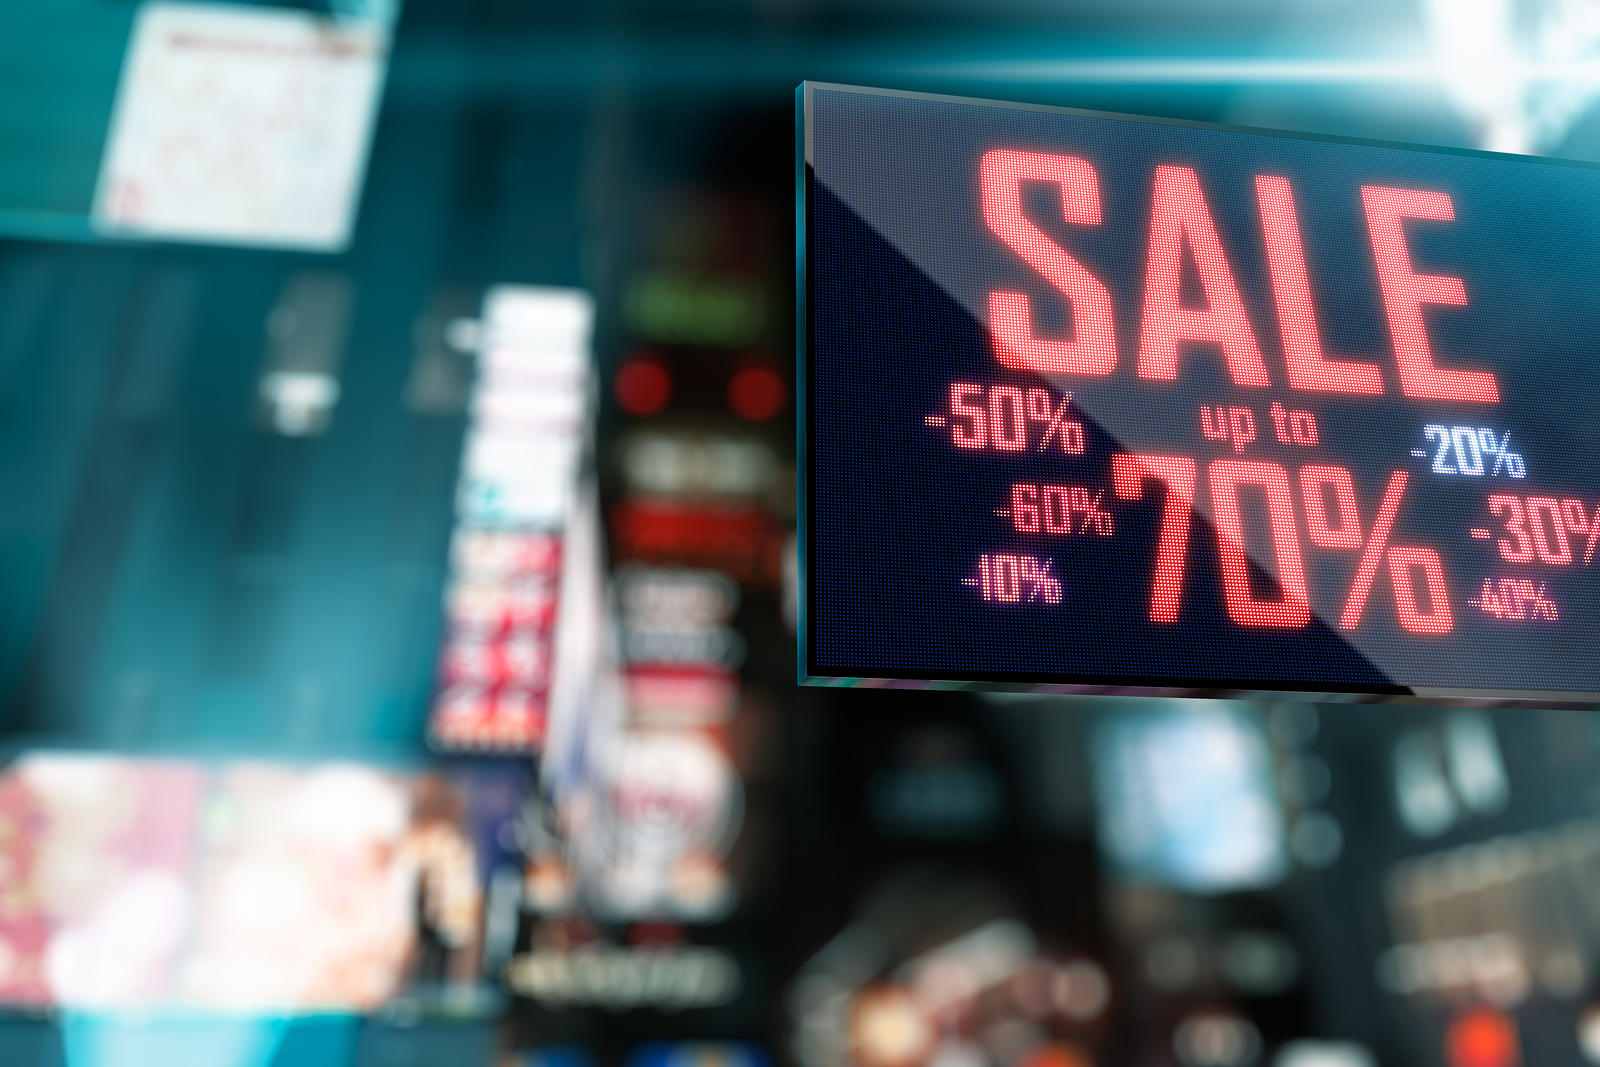 Retailers: Are You Making The Most Of Your Digital Displays?